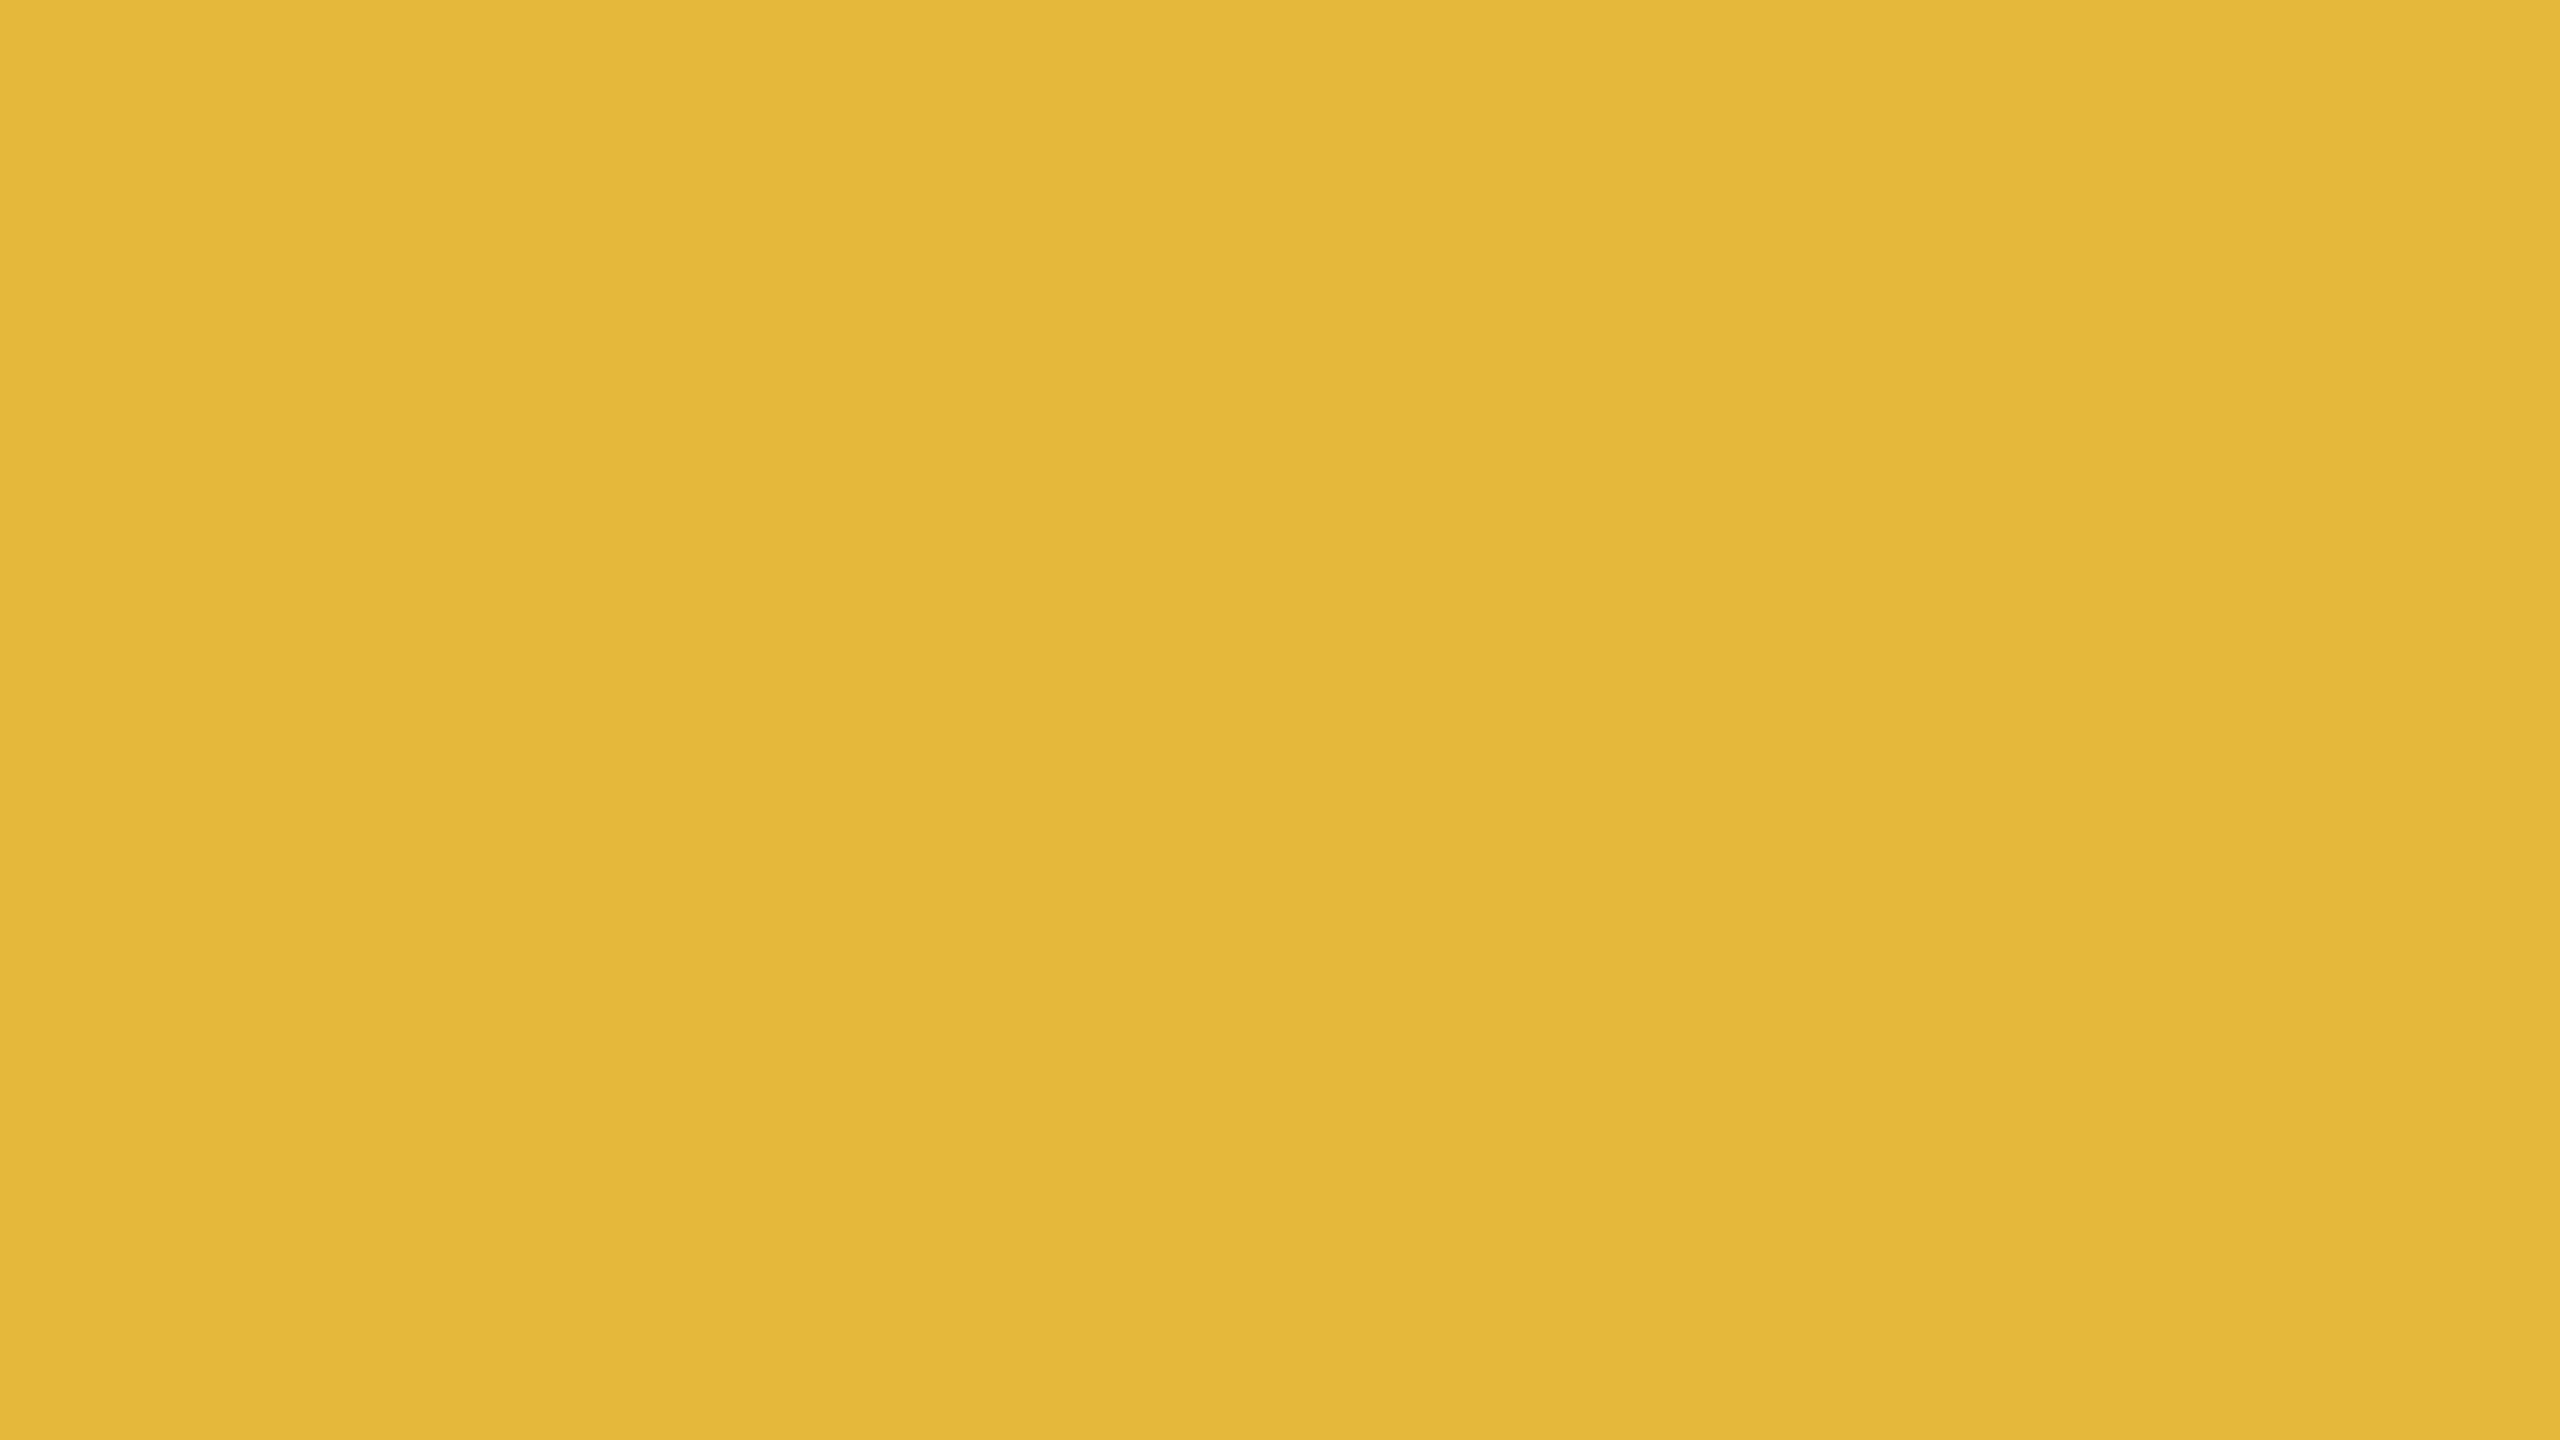 2560x1440 Meat Brown Solid Color Background